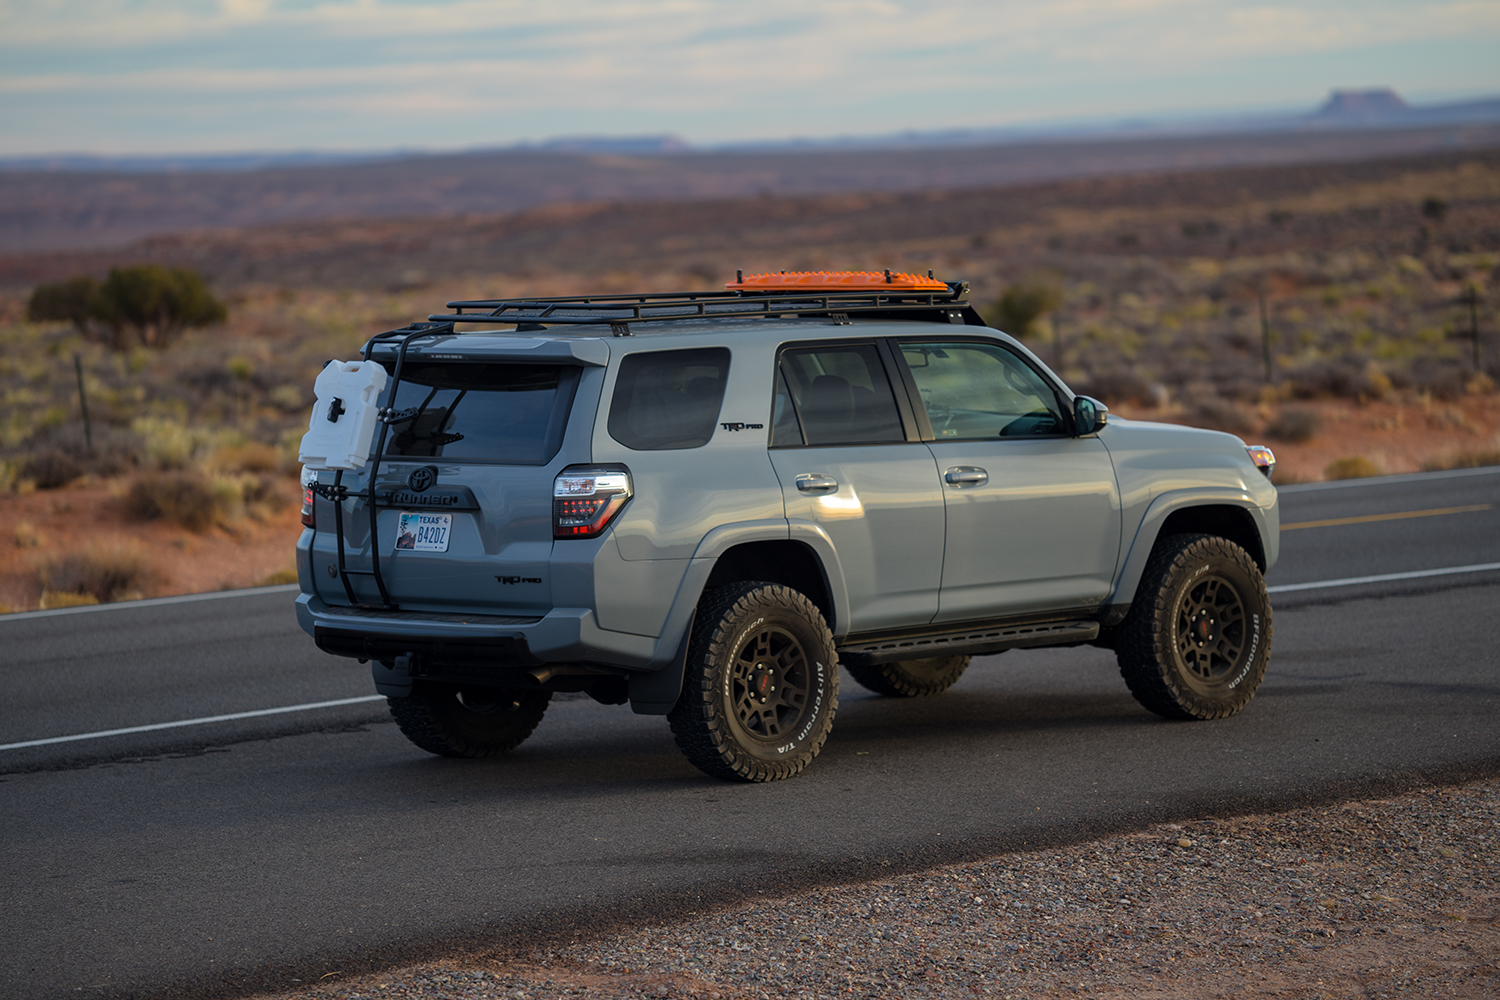 Gobi 4Runner Roof Rack - Full Roof Rack